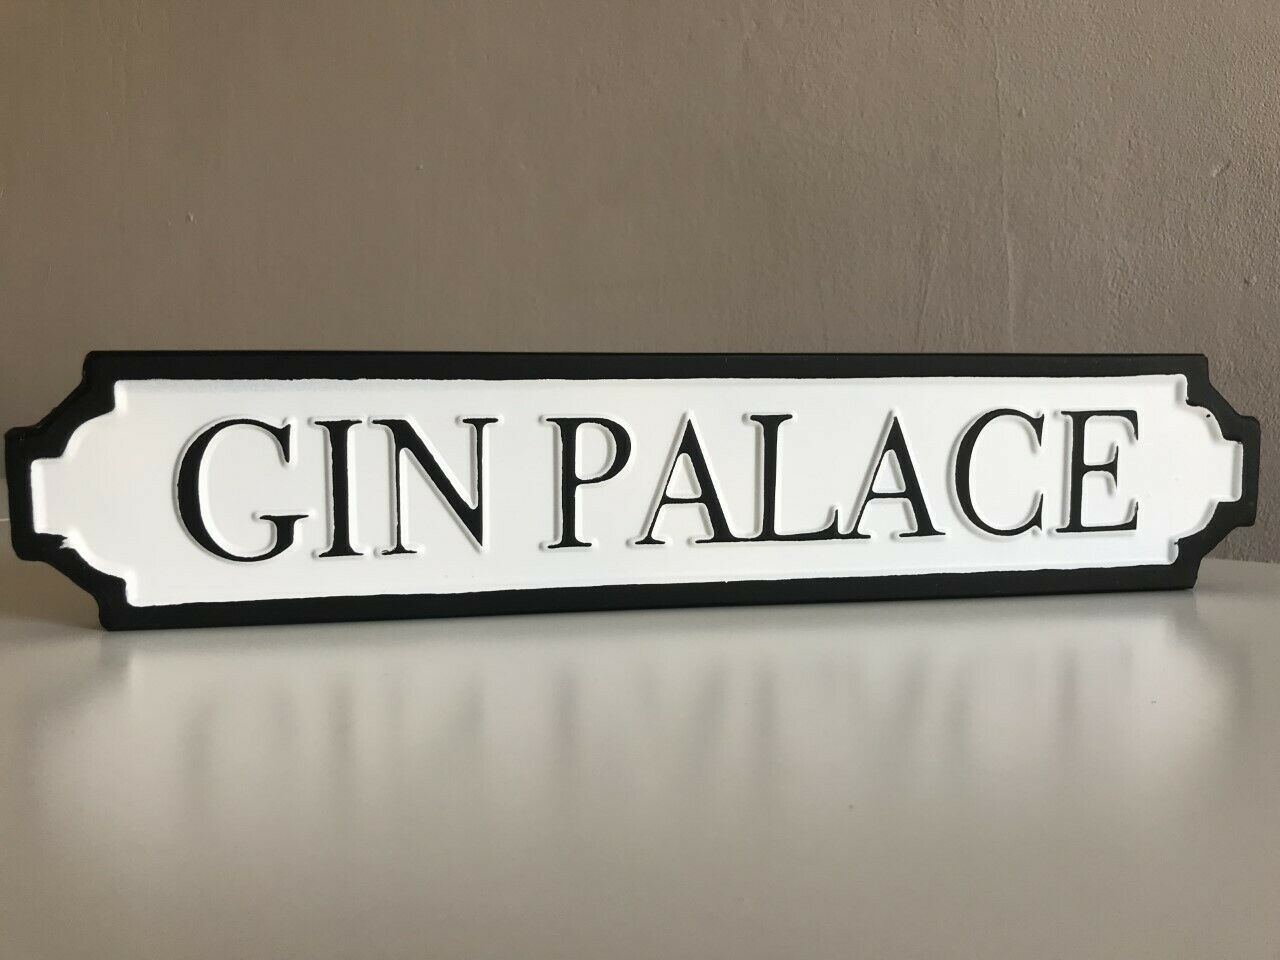 GIN PALACE Perfect for Gin Lovers Street Sign Vintage Road Sign